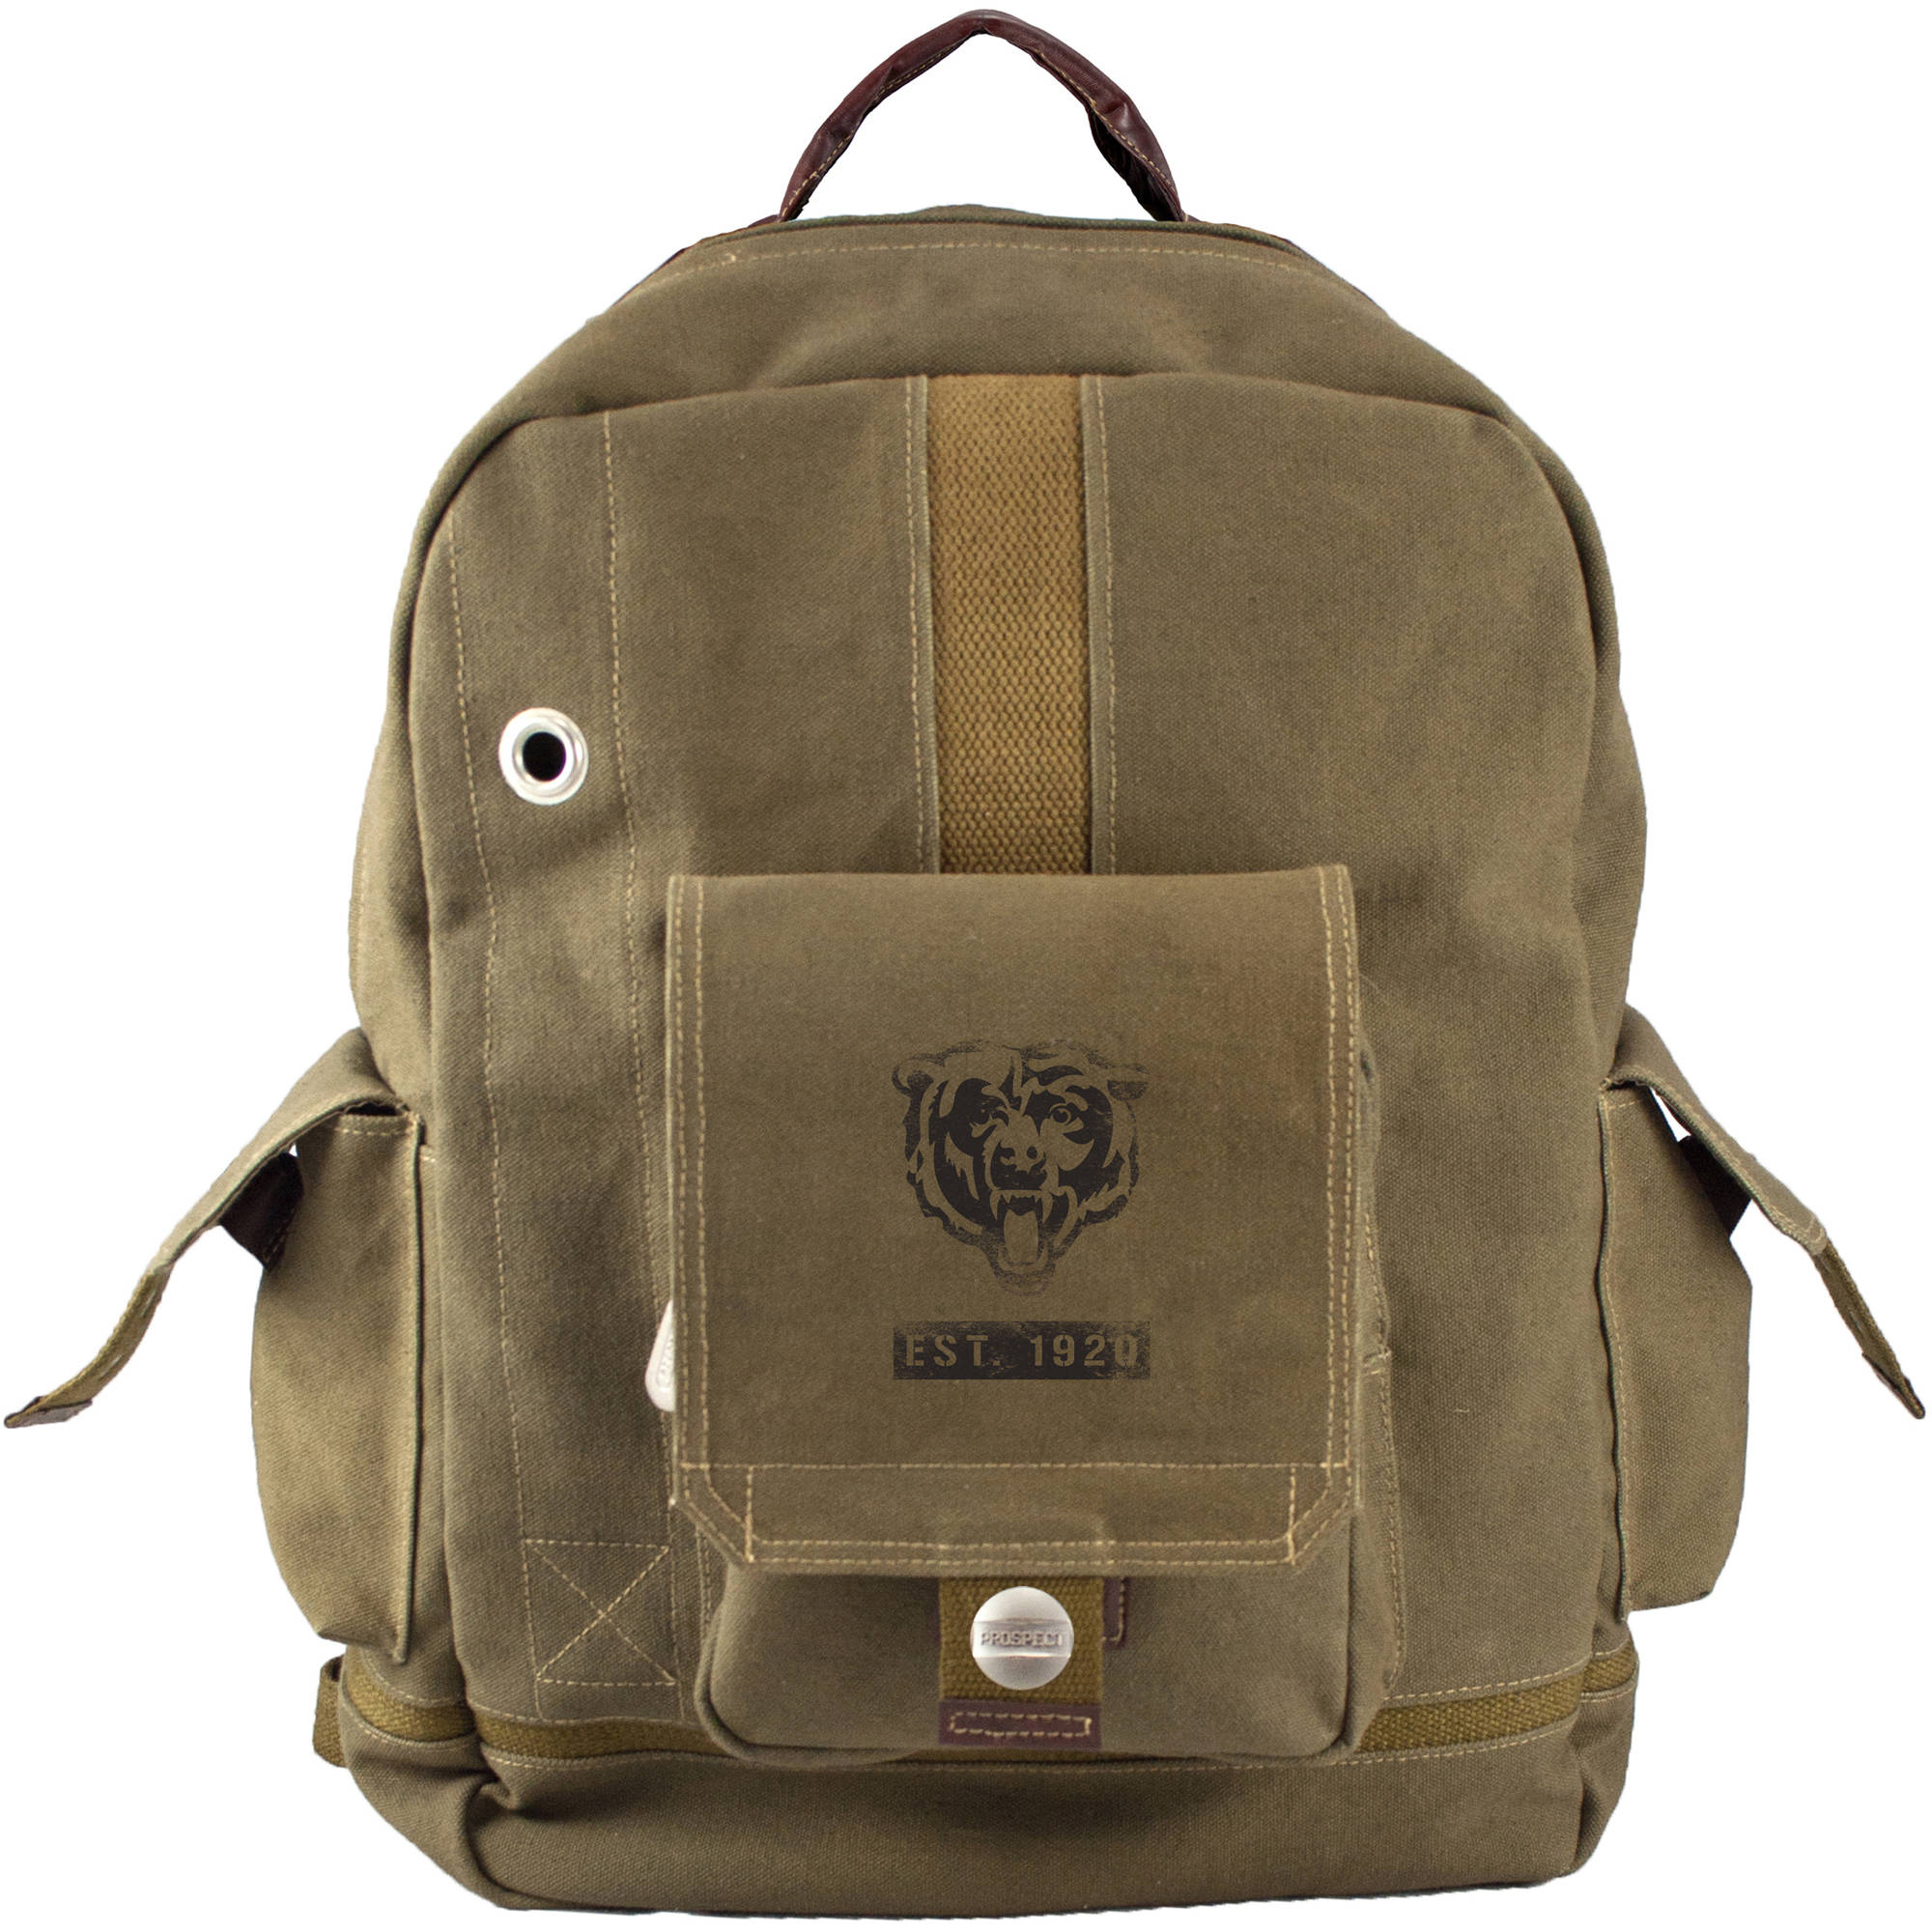 Little Earth - NFL Prospect Backpack, Chicago Bears